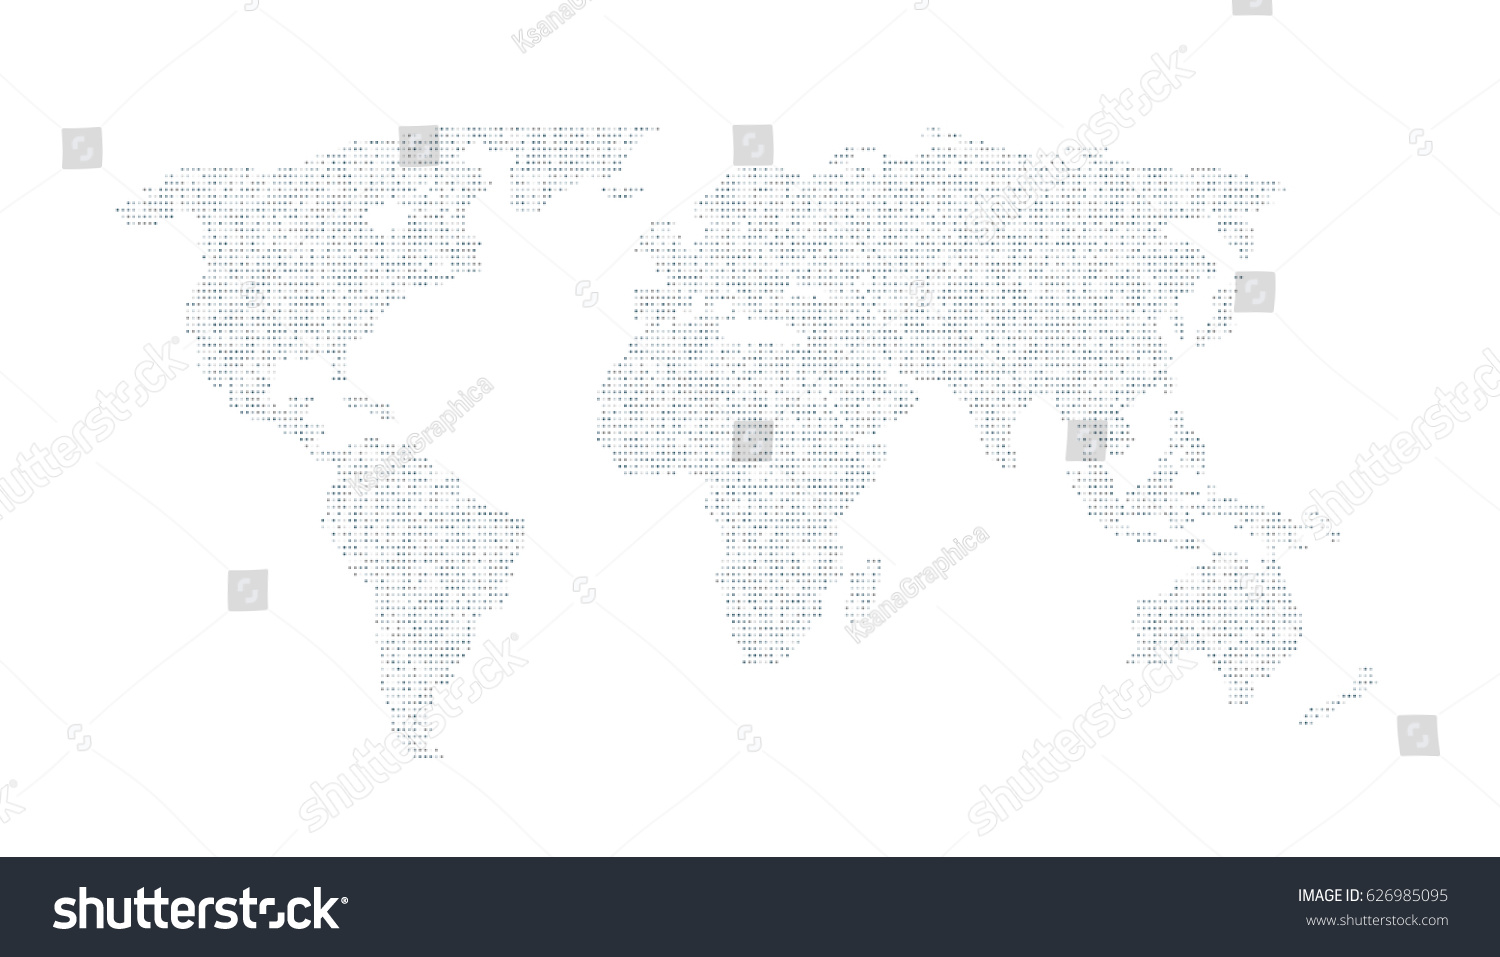 Digital grey color world map on stock vector 626985095 shutterstock digital grey color world map on the white background vector illustration gumiabroncs Gallery